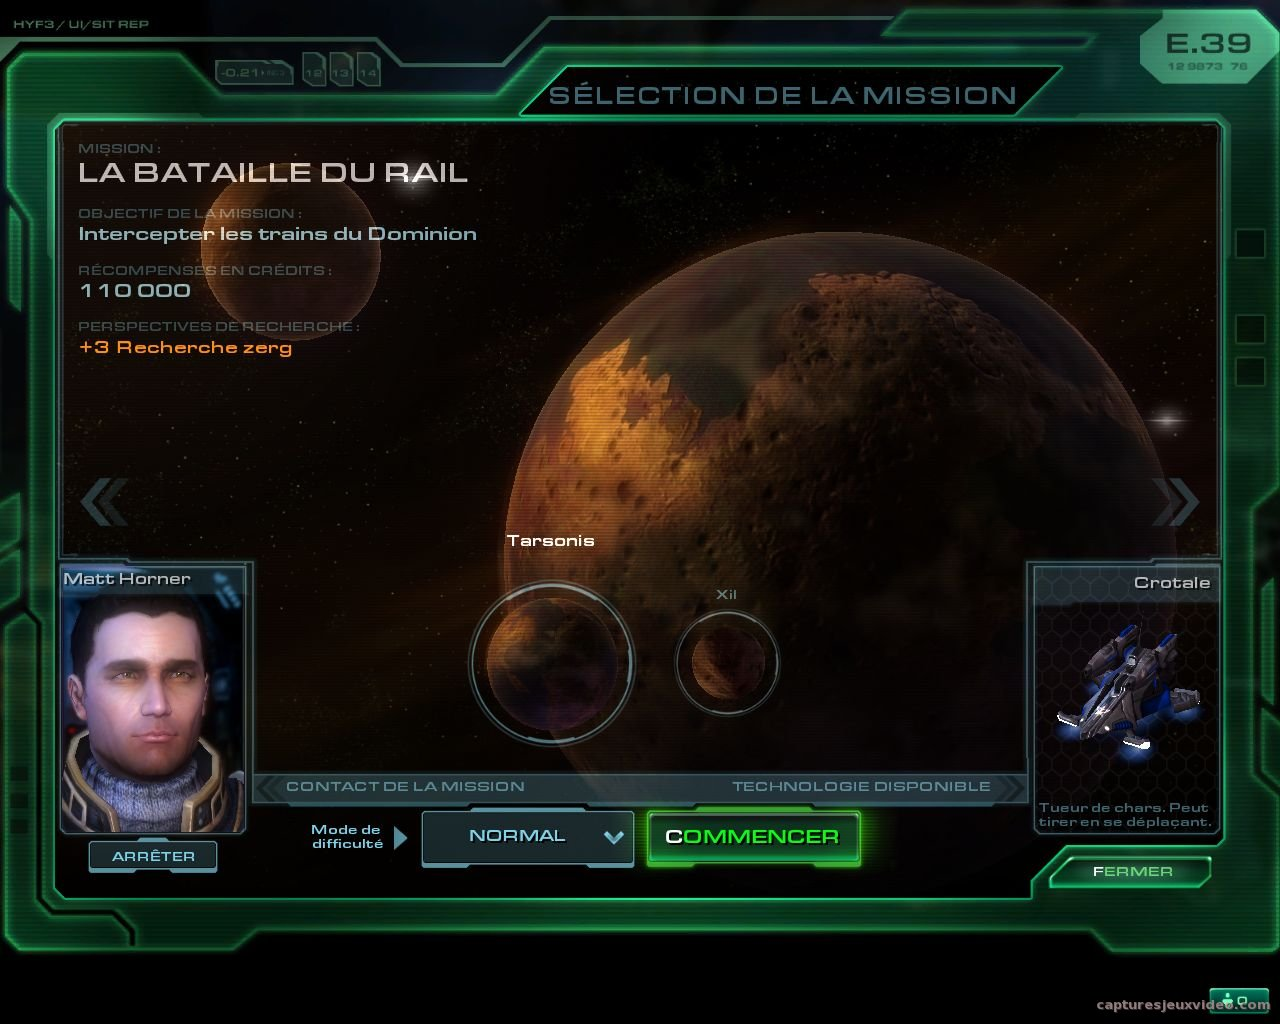 Capture d'écran - Starcraft 2 - Avant mission briefing